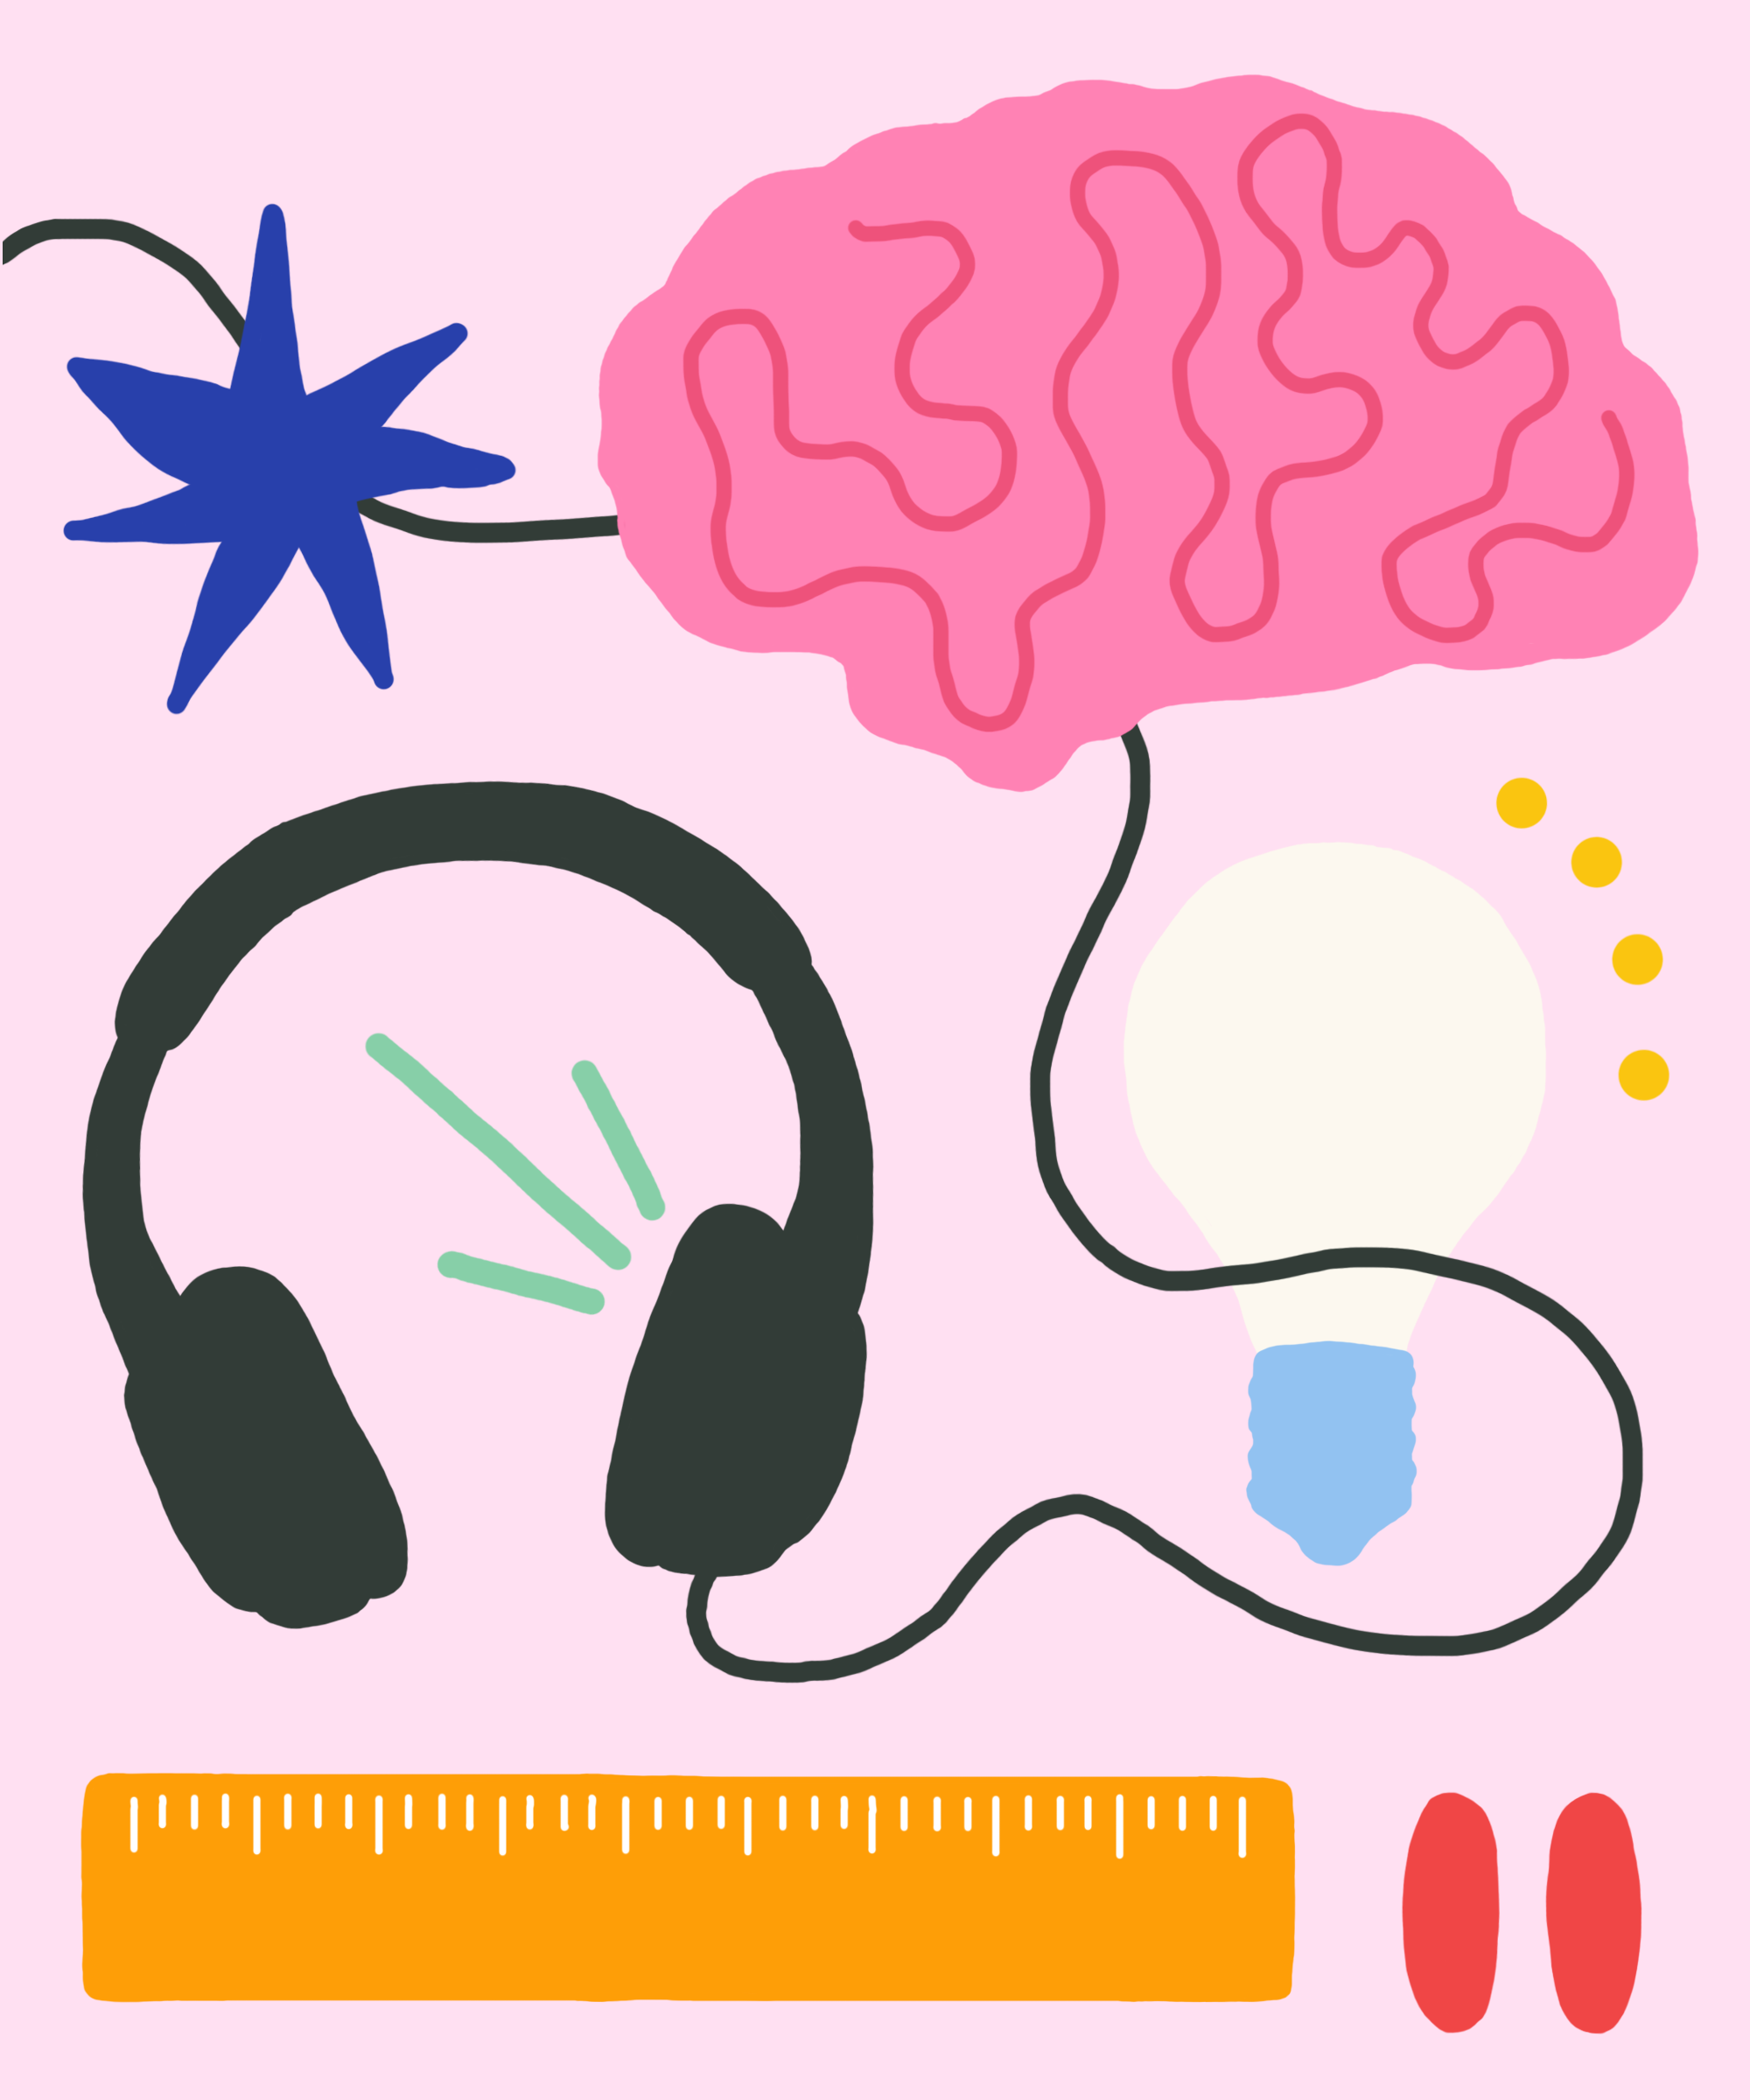 15 Podcasts That Will Make You Smarter